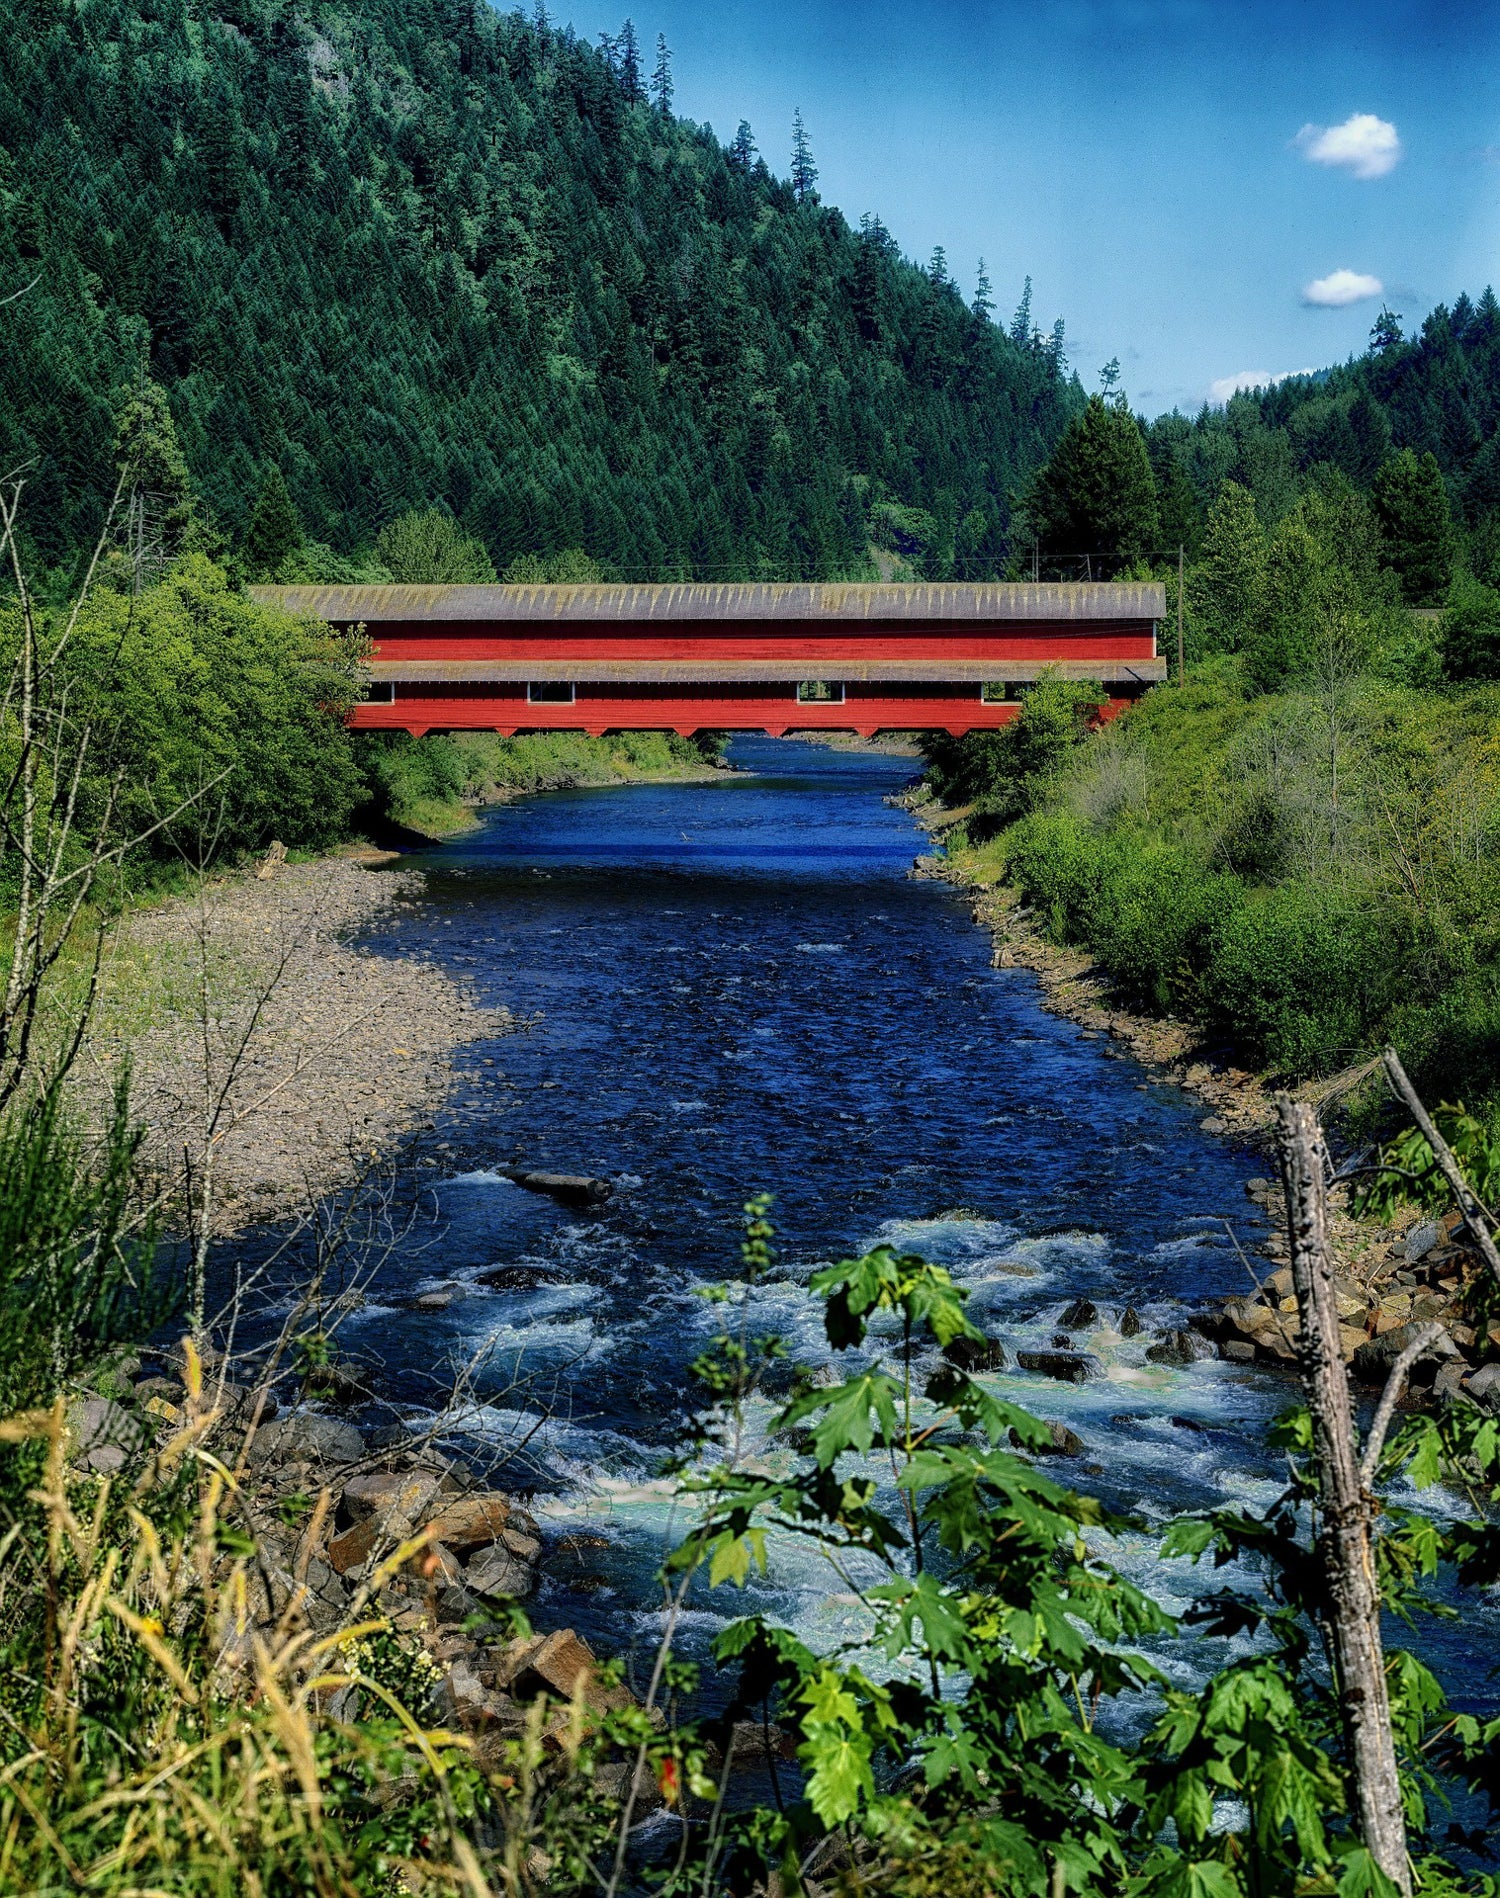 a Covered Bridge in Oregon over a blue river